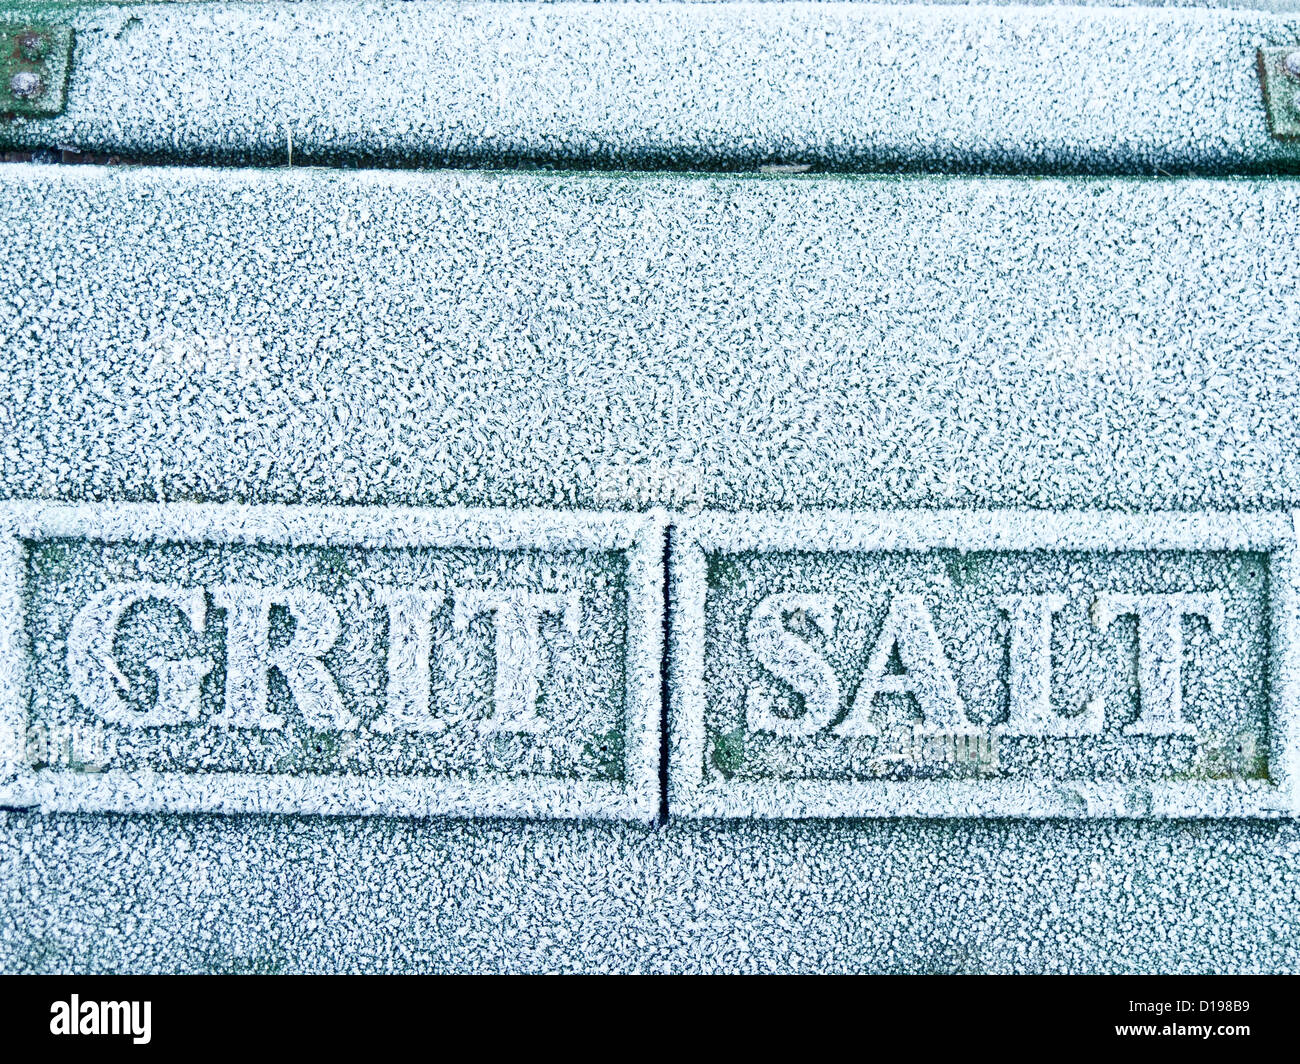 Roadside grit salt box with winter frost. - Stock Image